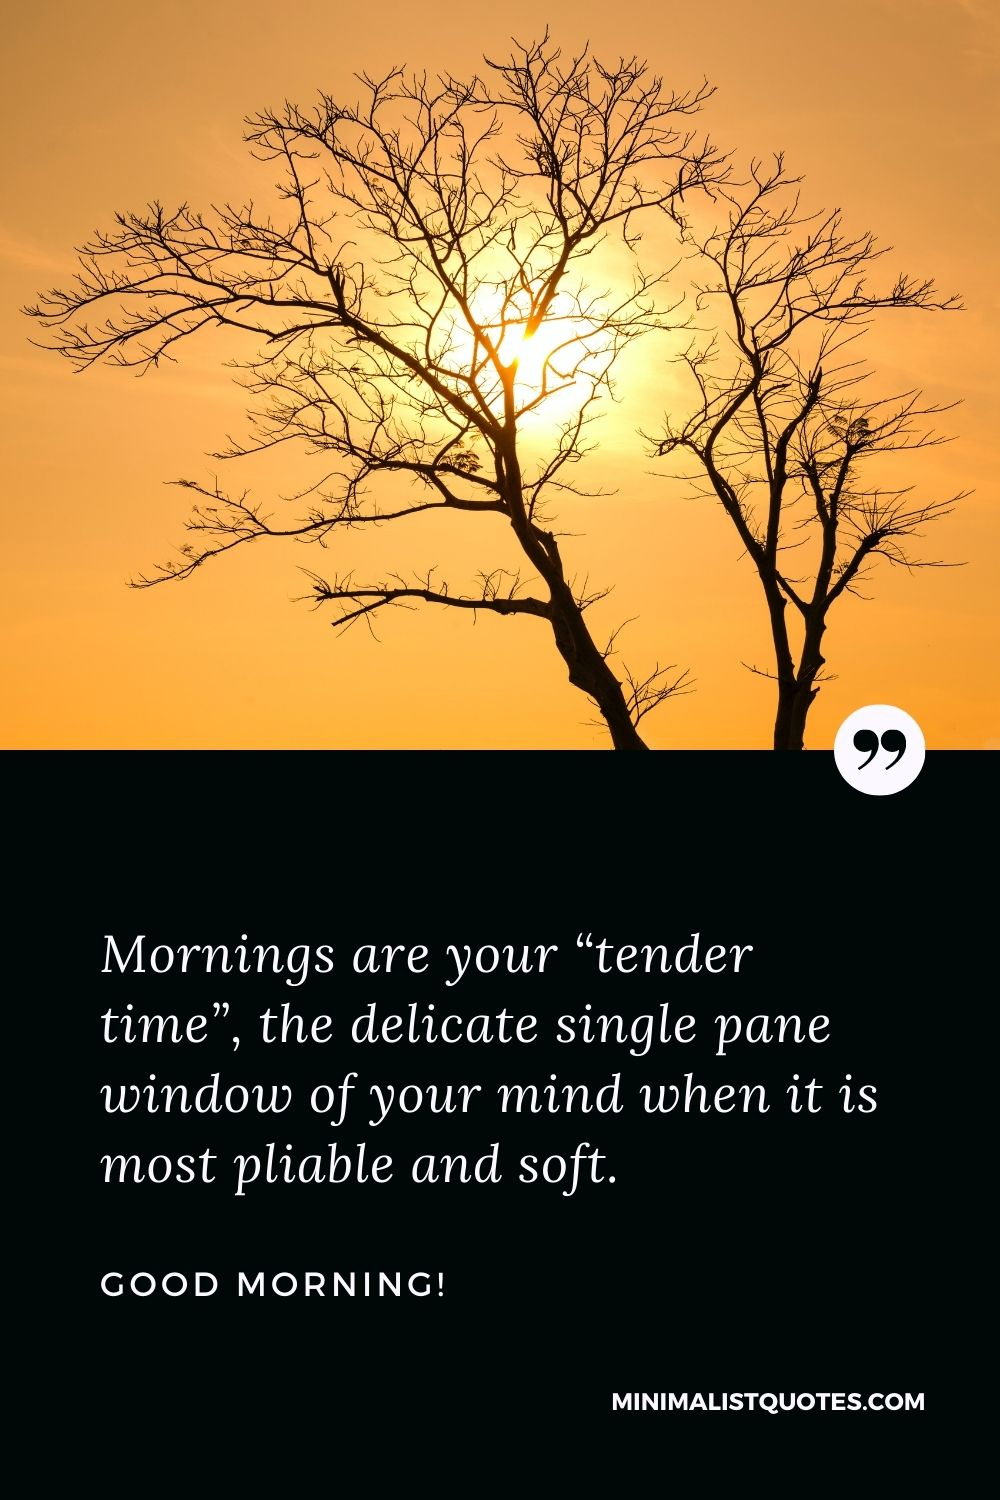 """Good Morning Wish & Message With HD Images: Mornings are your """"tender time"""", the delicate single pane window of your mind when it is most pliable and soft. Good Morning!"""